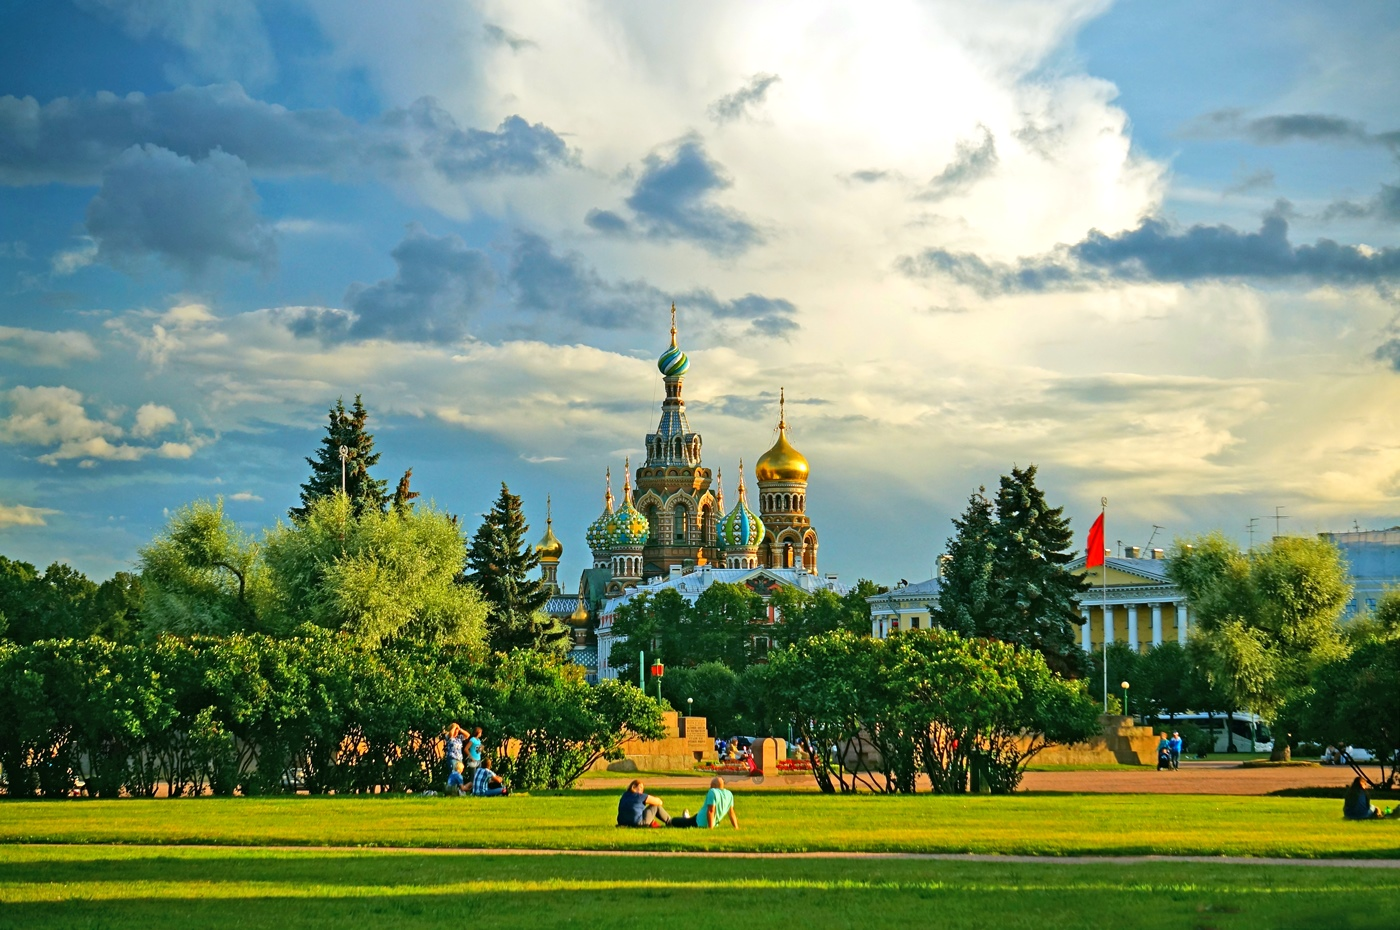 What a nice weather. Saint-Petersburg